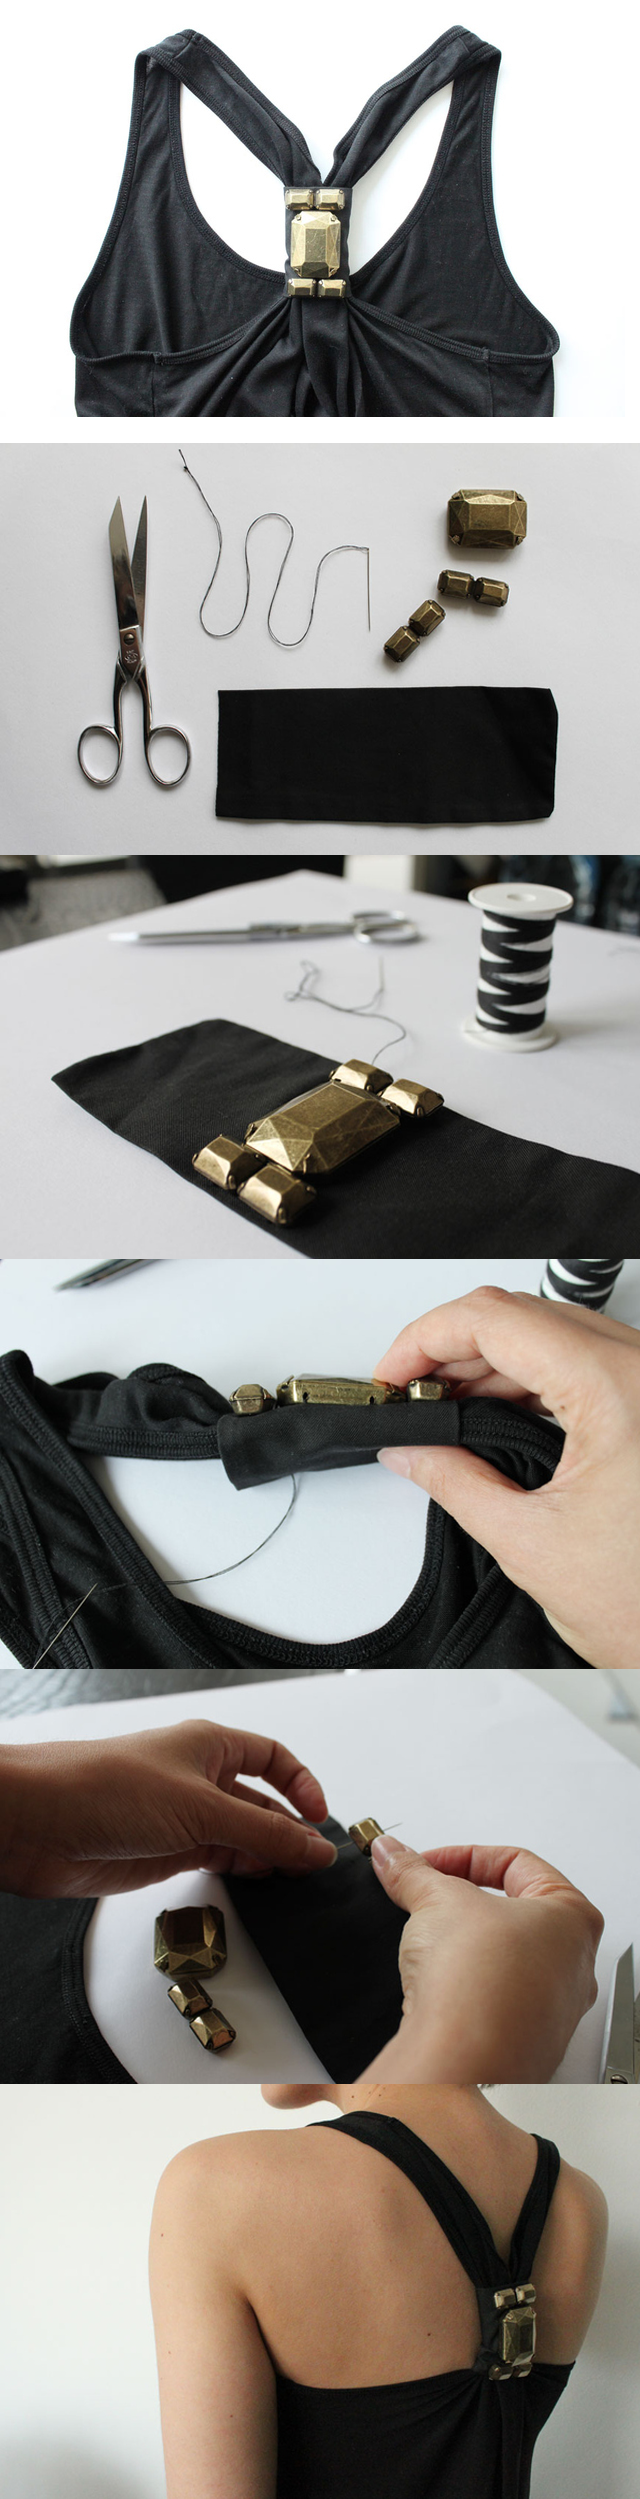 Fashion Projects (9)